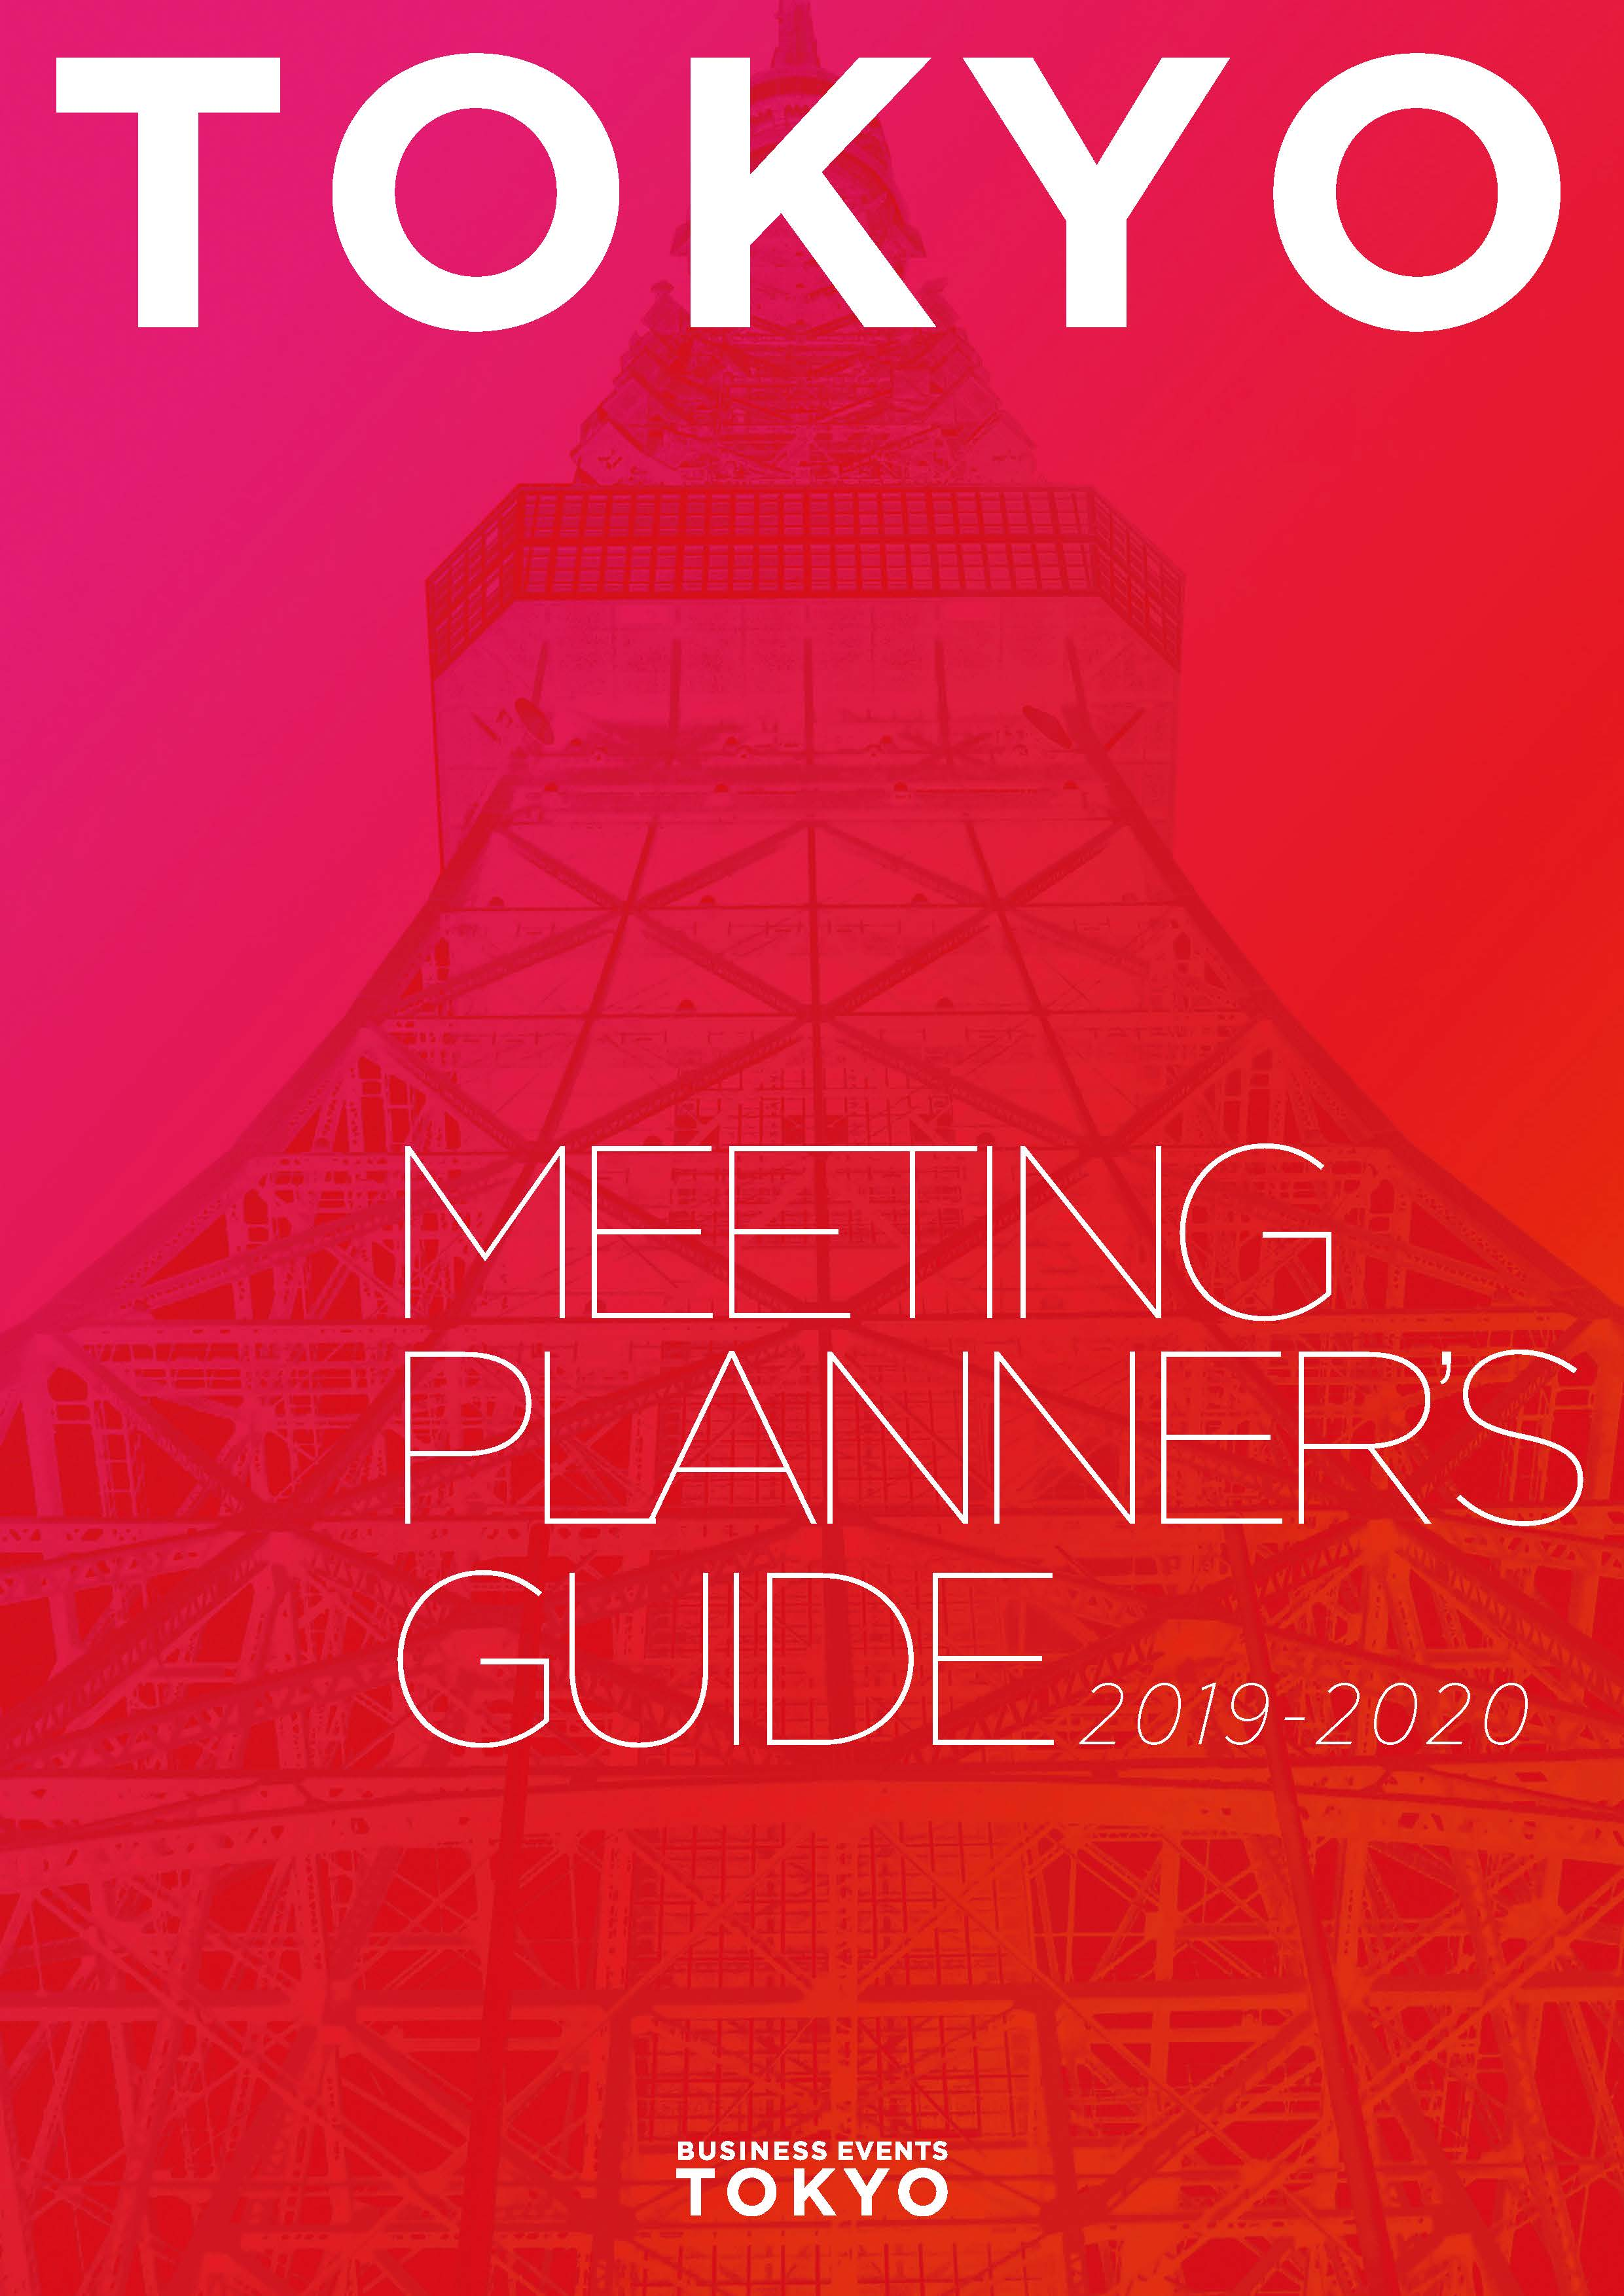 TOKYO MEETING PLANNER'S GUIDE 2019-2020 | BUSINESS EVENTS TOKYO